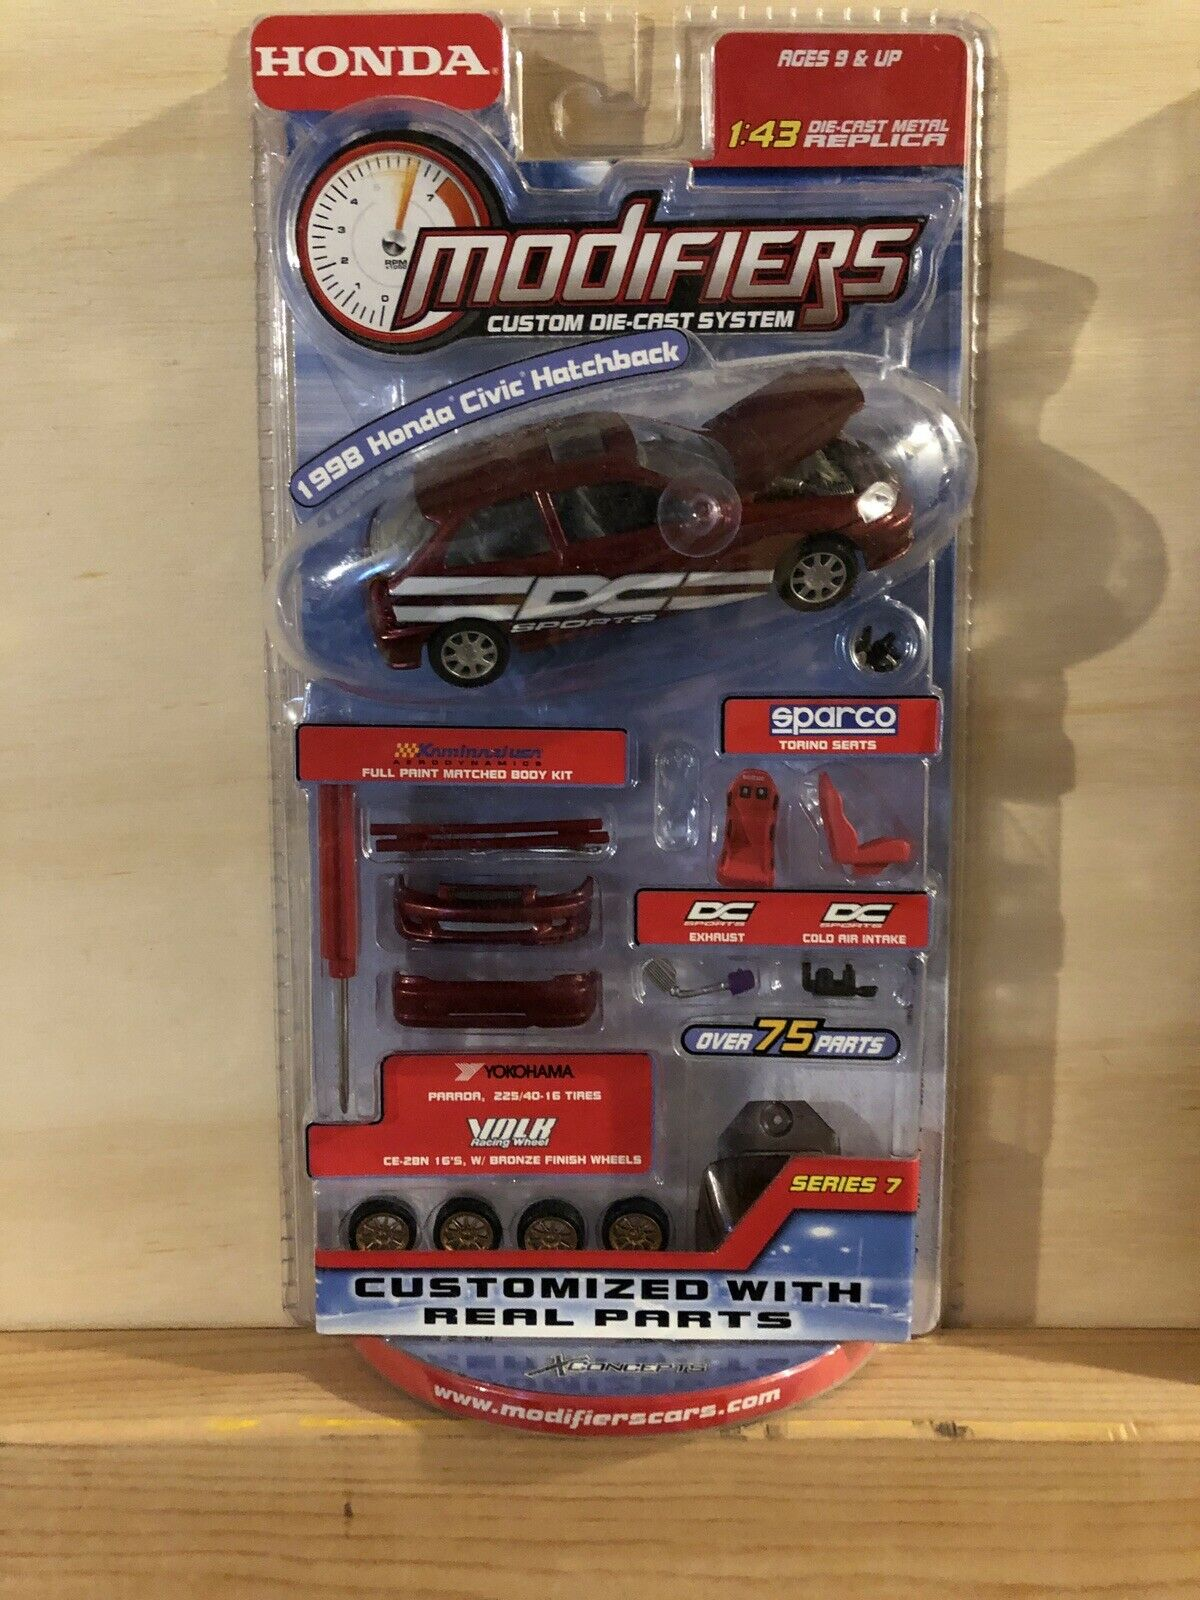 Modifiers Diecast - 1998 Honda Civic Hatchback